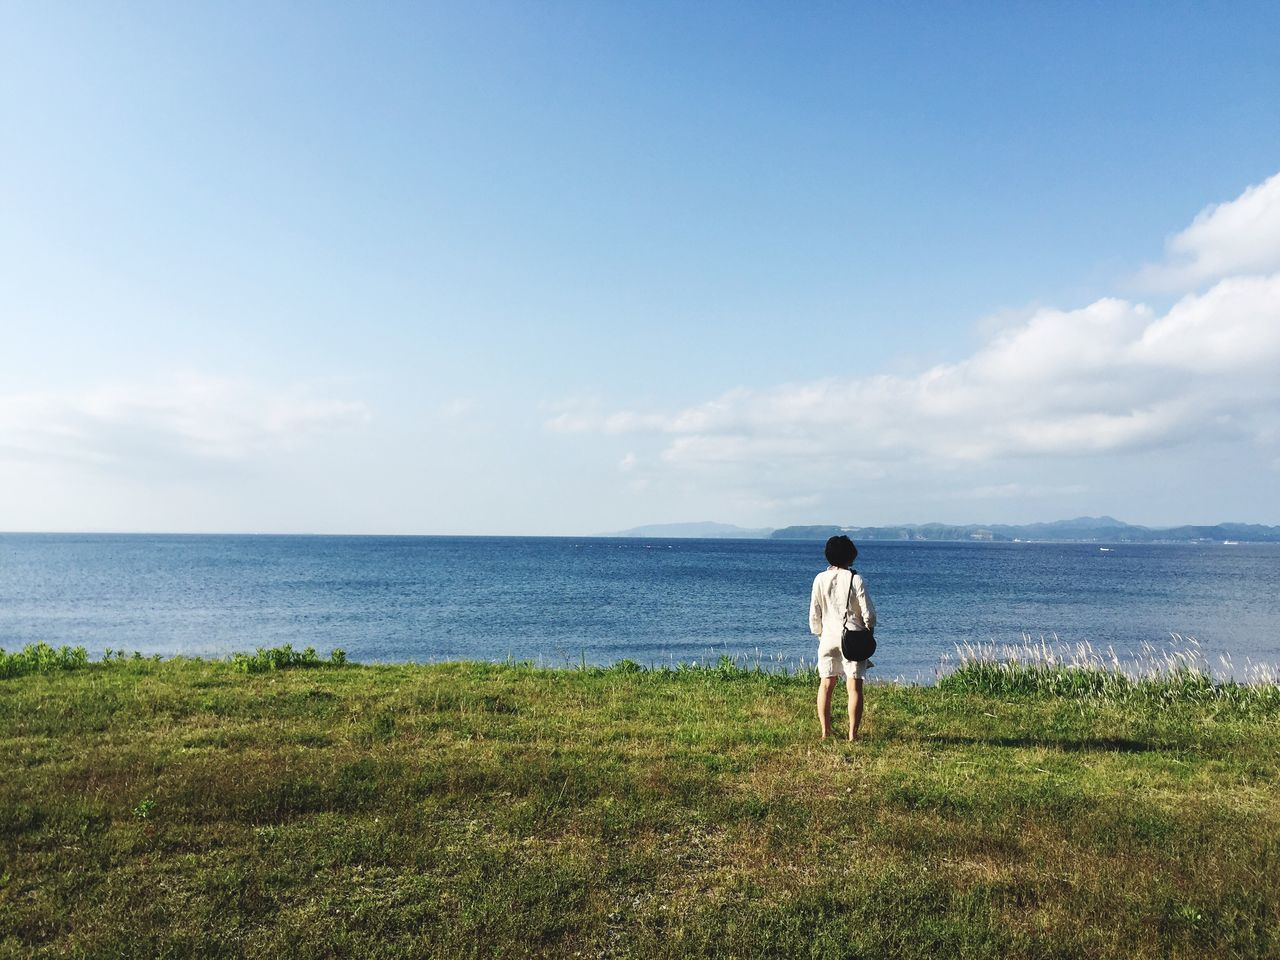 Day dreaming... Sea Nature Horizon Over Water Sky Full Length Water Rear View Standing Grass Scenics Beauty In Nature One Person Real People Tranquility Outdoors Day Lifestyles Beach Women